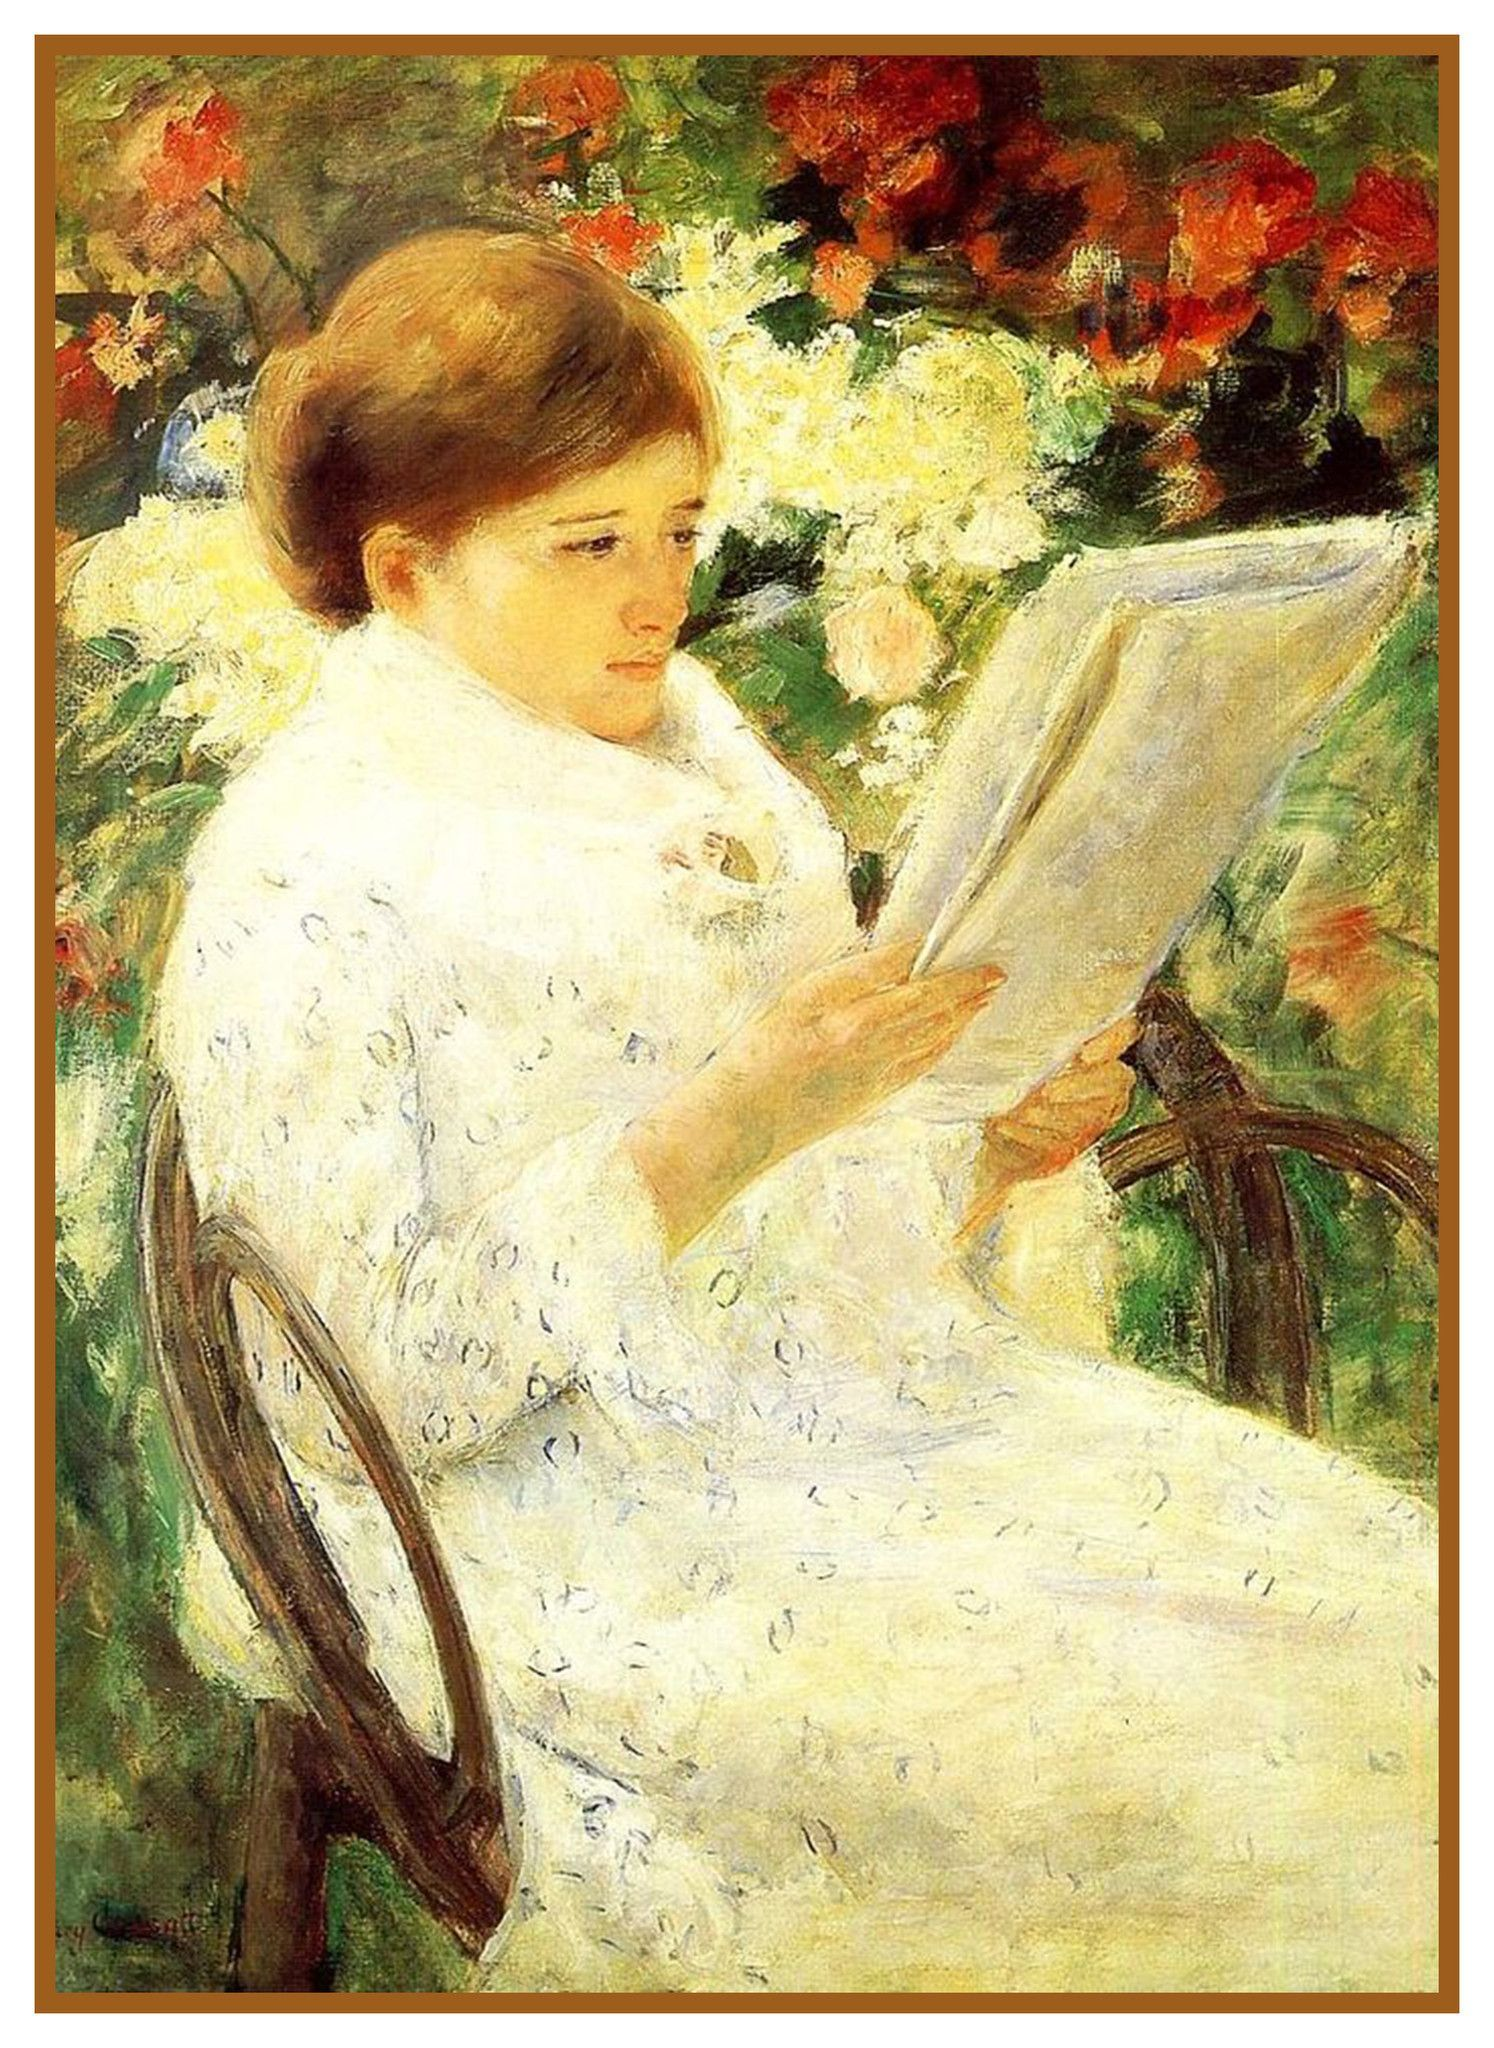 Woman Reading In Rose Garden By American Impressionist Artist Mary Cassatt Counted Cross Stitch Or